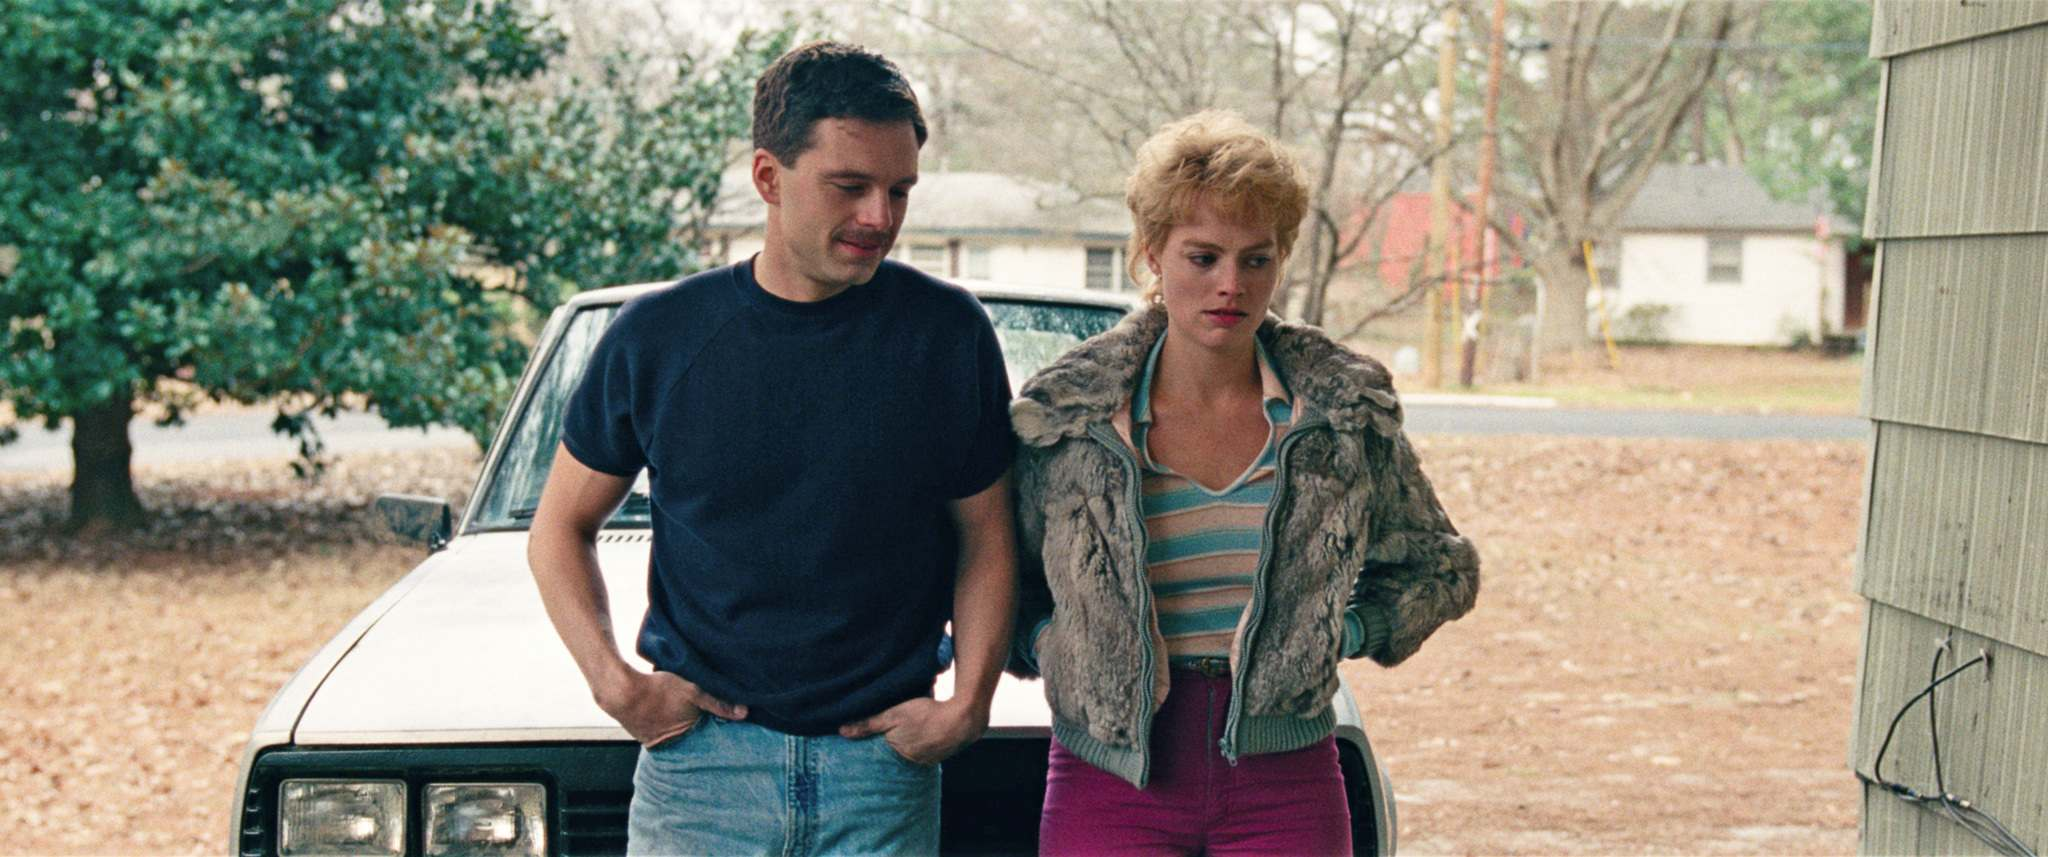 Sebastian Stan (left) plays Jeff Gillooly opposite producer Margot Robbie&rsquo;s portrayal of Tonya Harding in I, Tonya, which opens Jan. 5 in Winnipeg.</p>